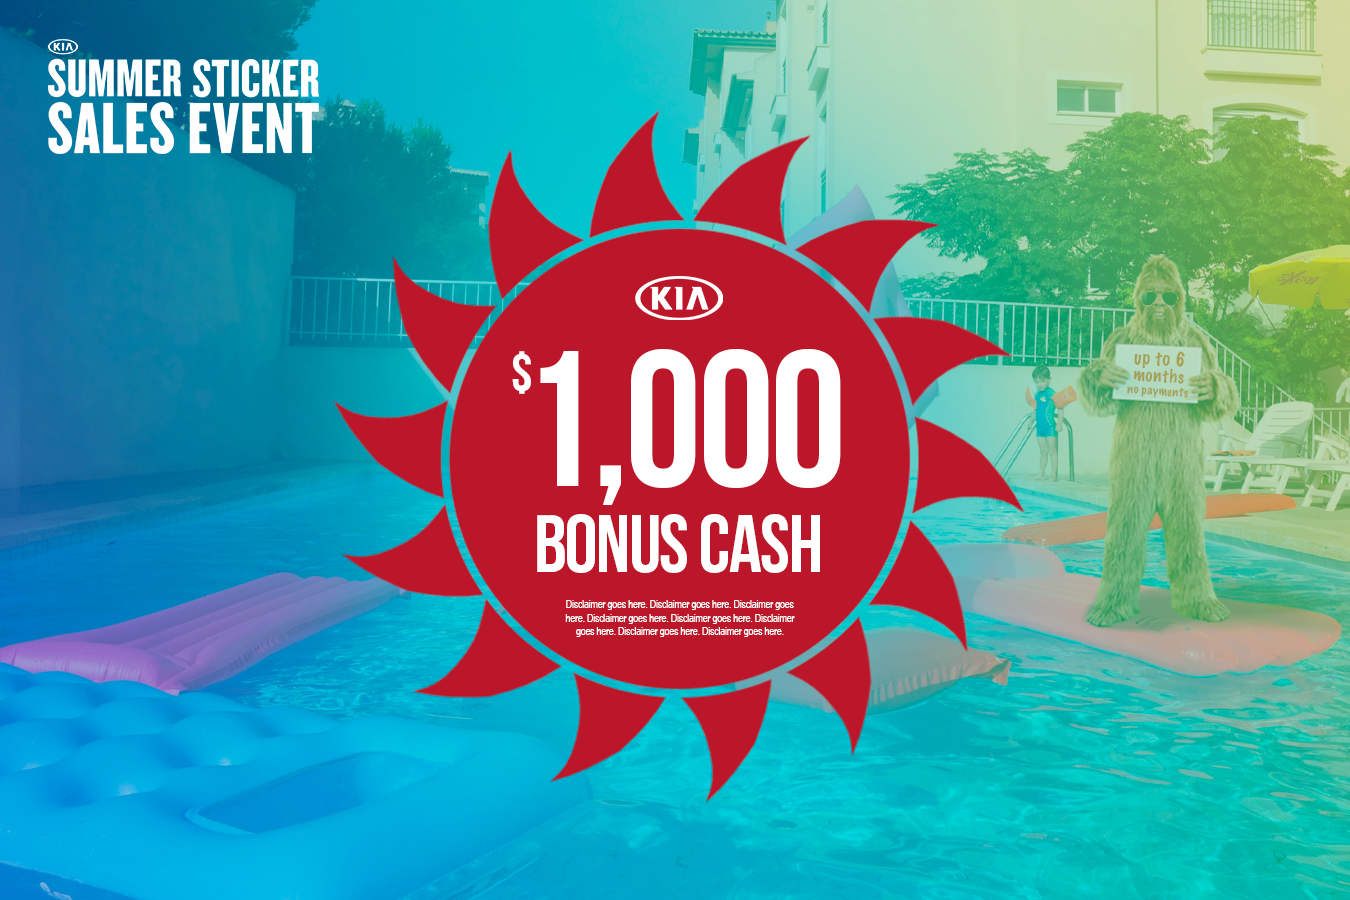 New Kia Offer of $1,000 Bonus Cash